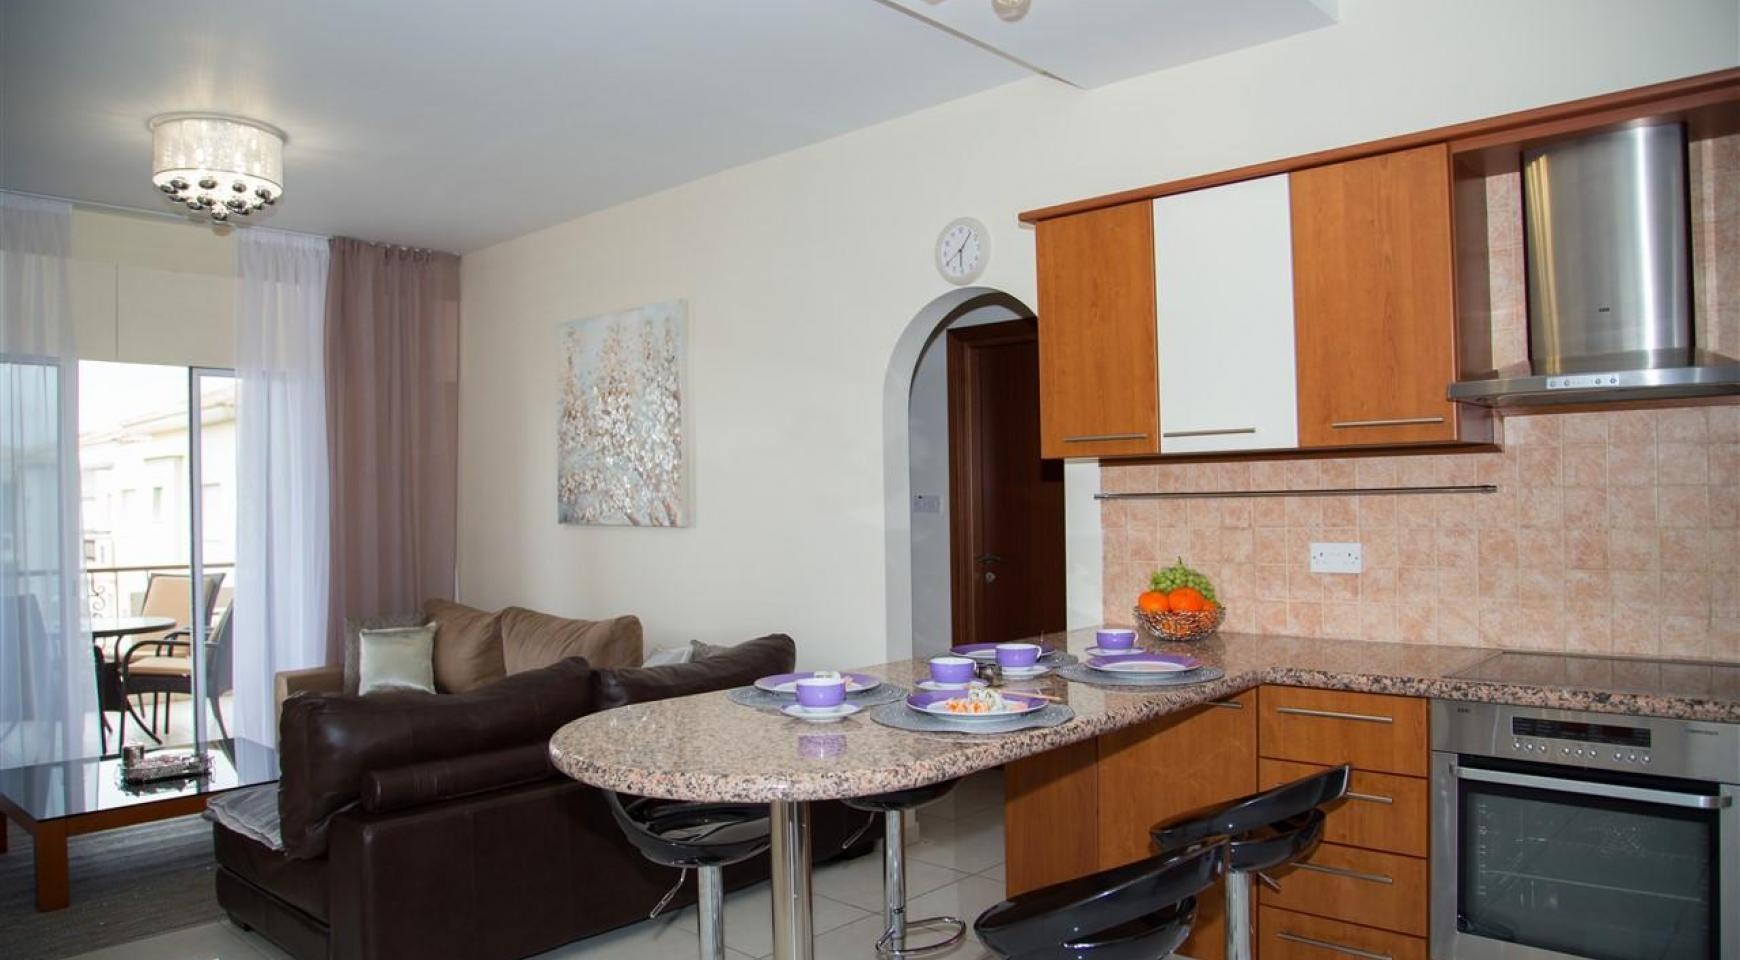 2 Bedroom Apartment Mesogios Iris 304 in the Complex near the Sea - 3